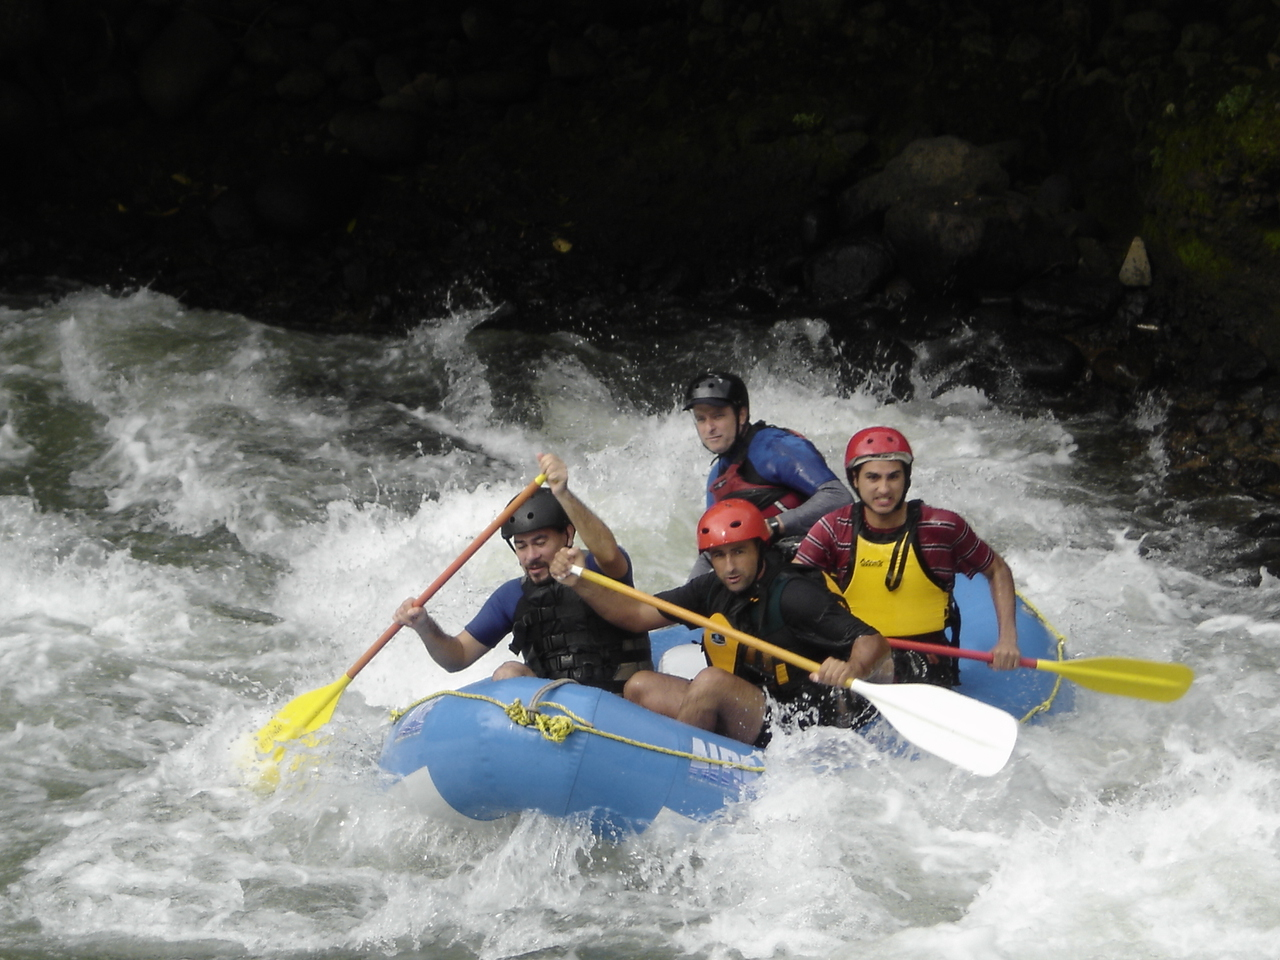 Whitewater Rafting. Photo by Wikimedia Commons.